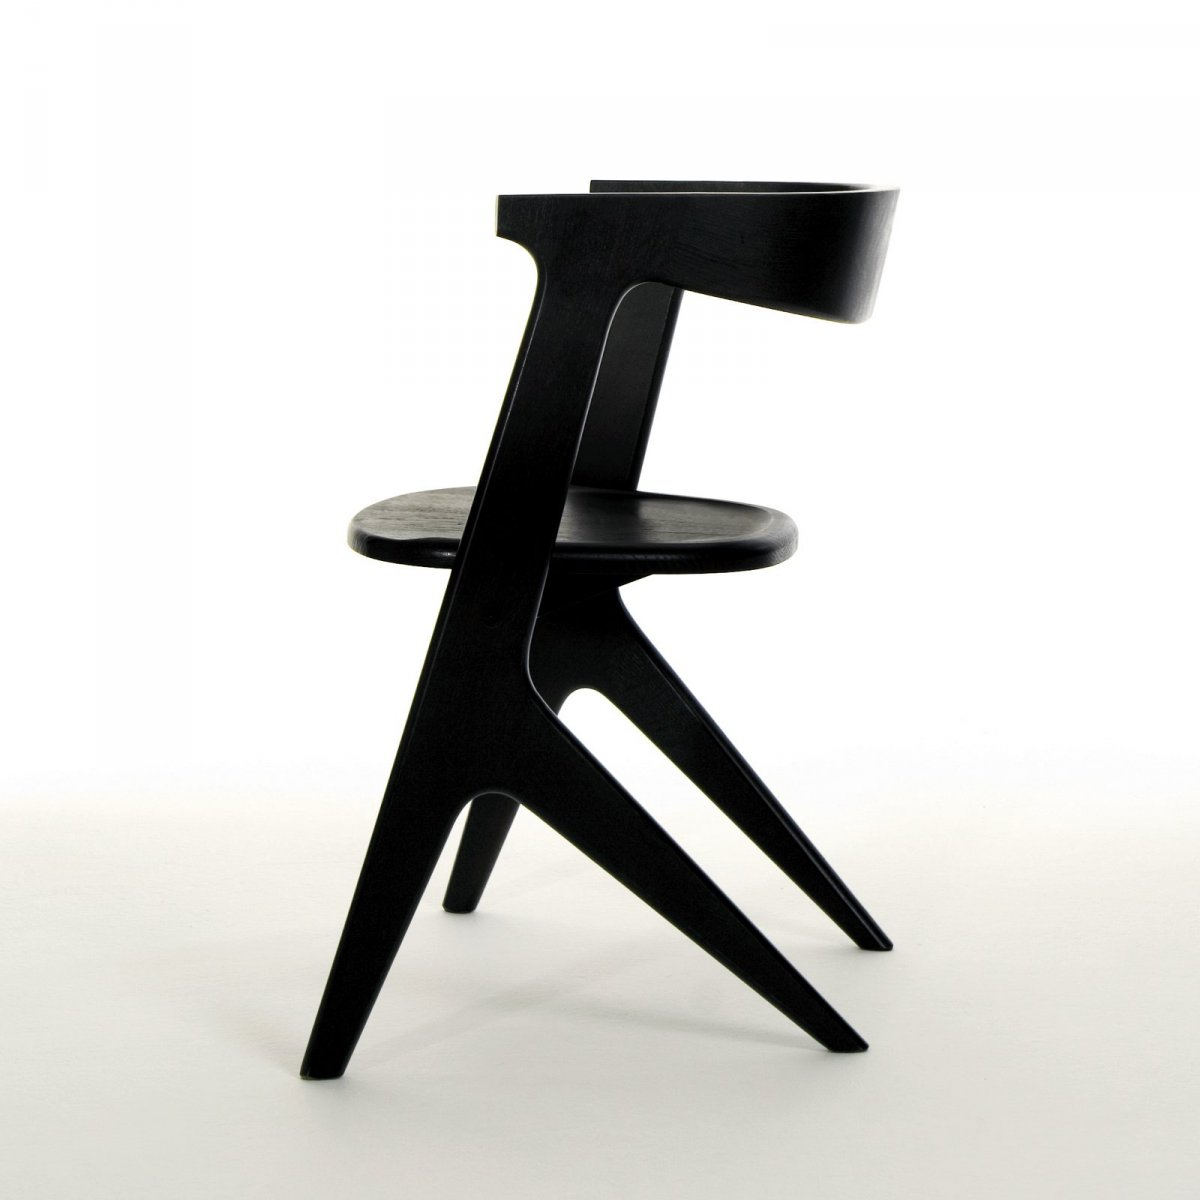 Slab Chair, black, side view.